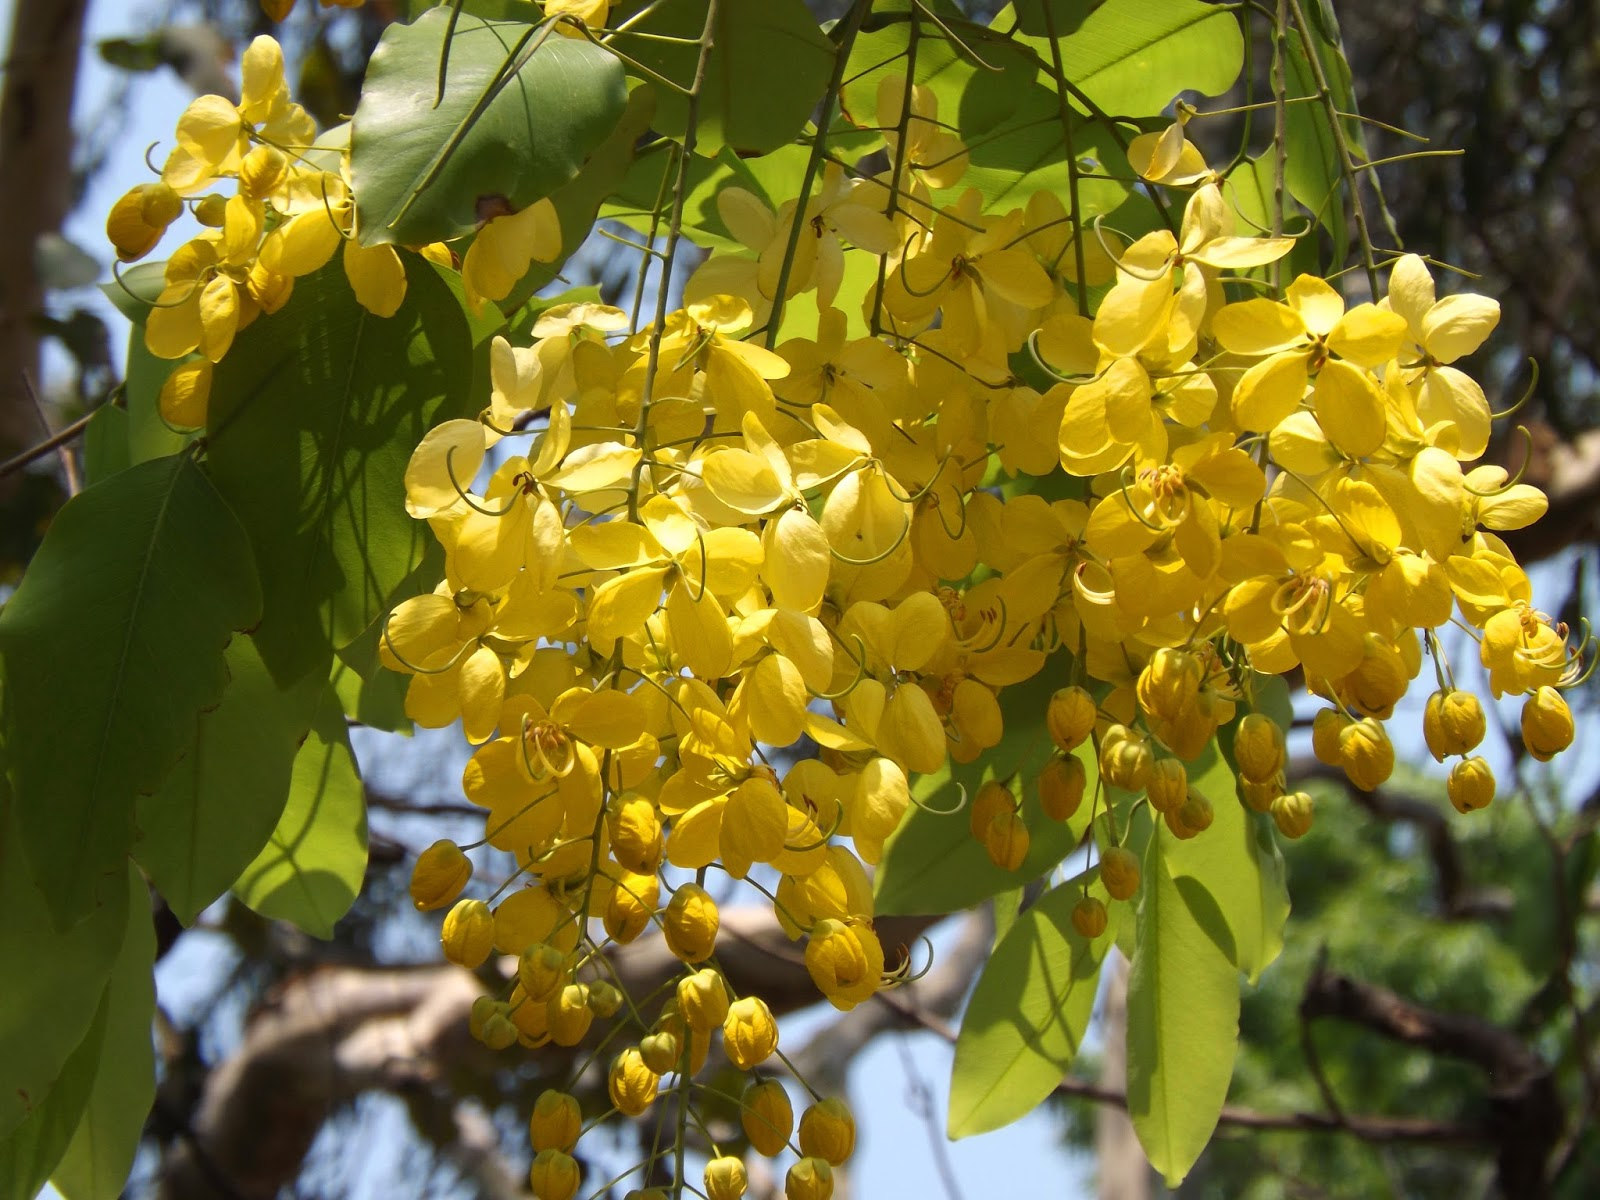 Shonalu golden shower tree cassia fistula flowers are yellow in pedunculate racemes 40 50 cm long flower is showy big 4 6 cm across flowering season is early summer april mightylinksfo